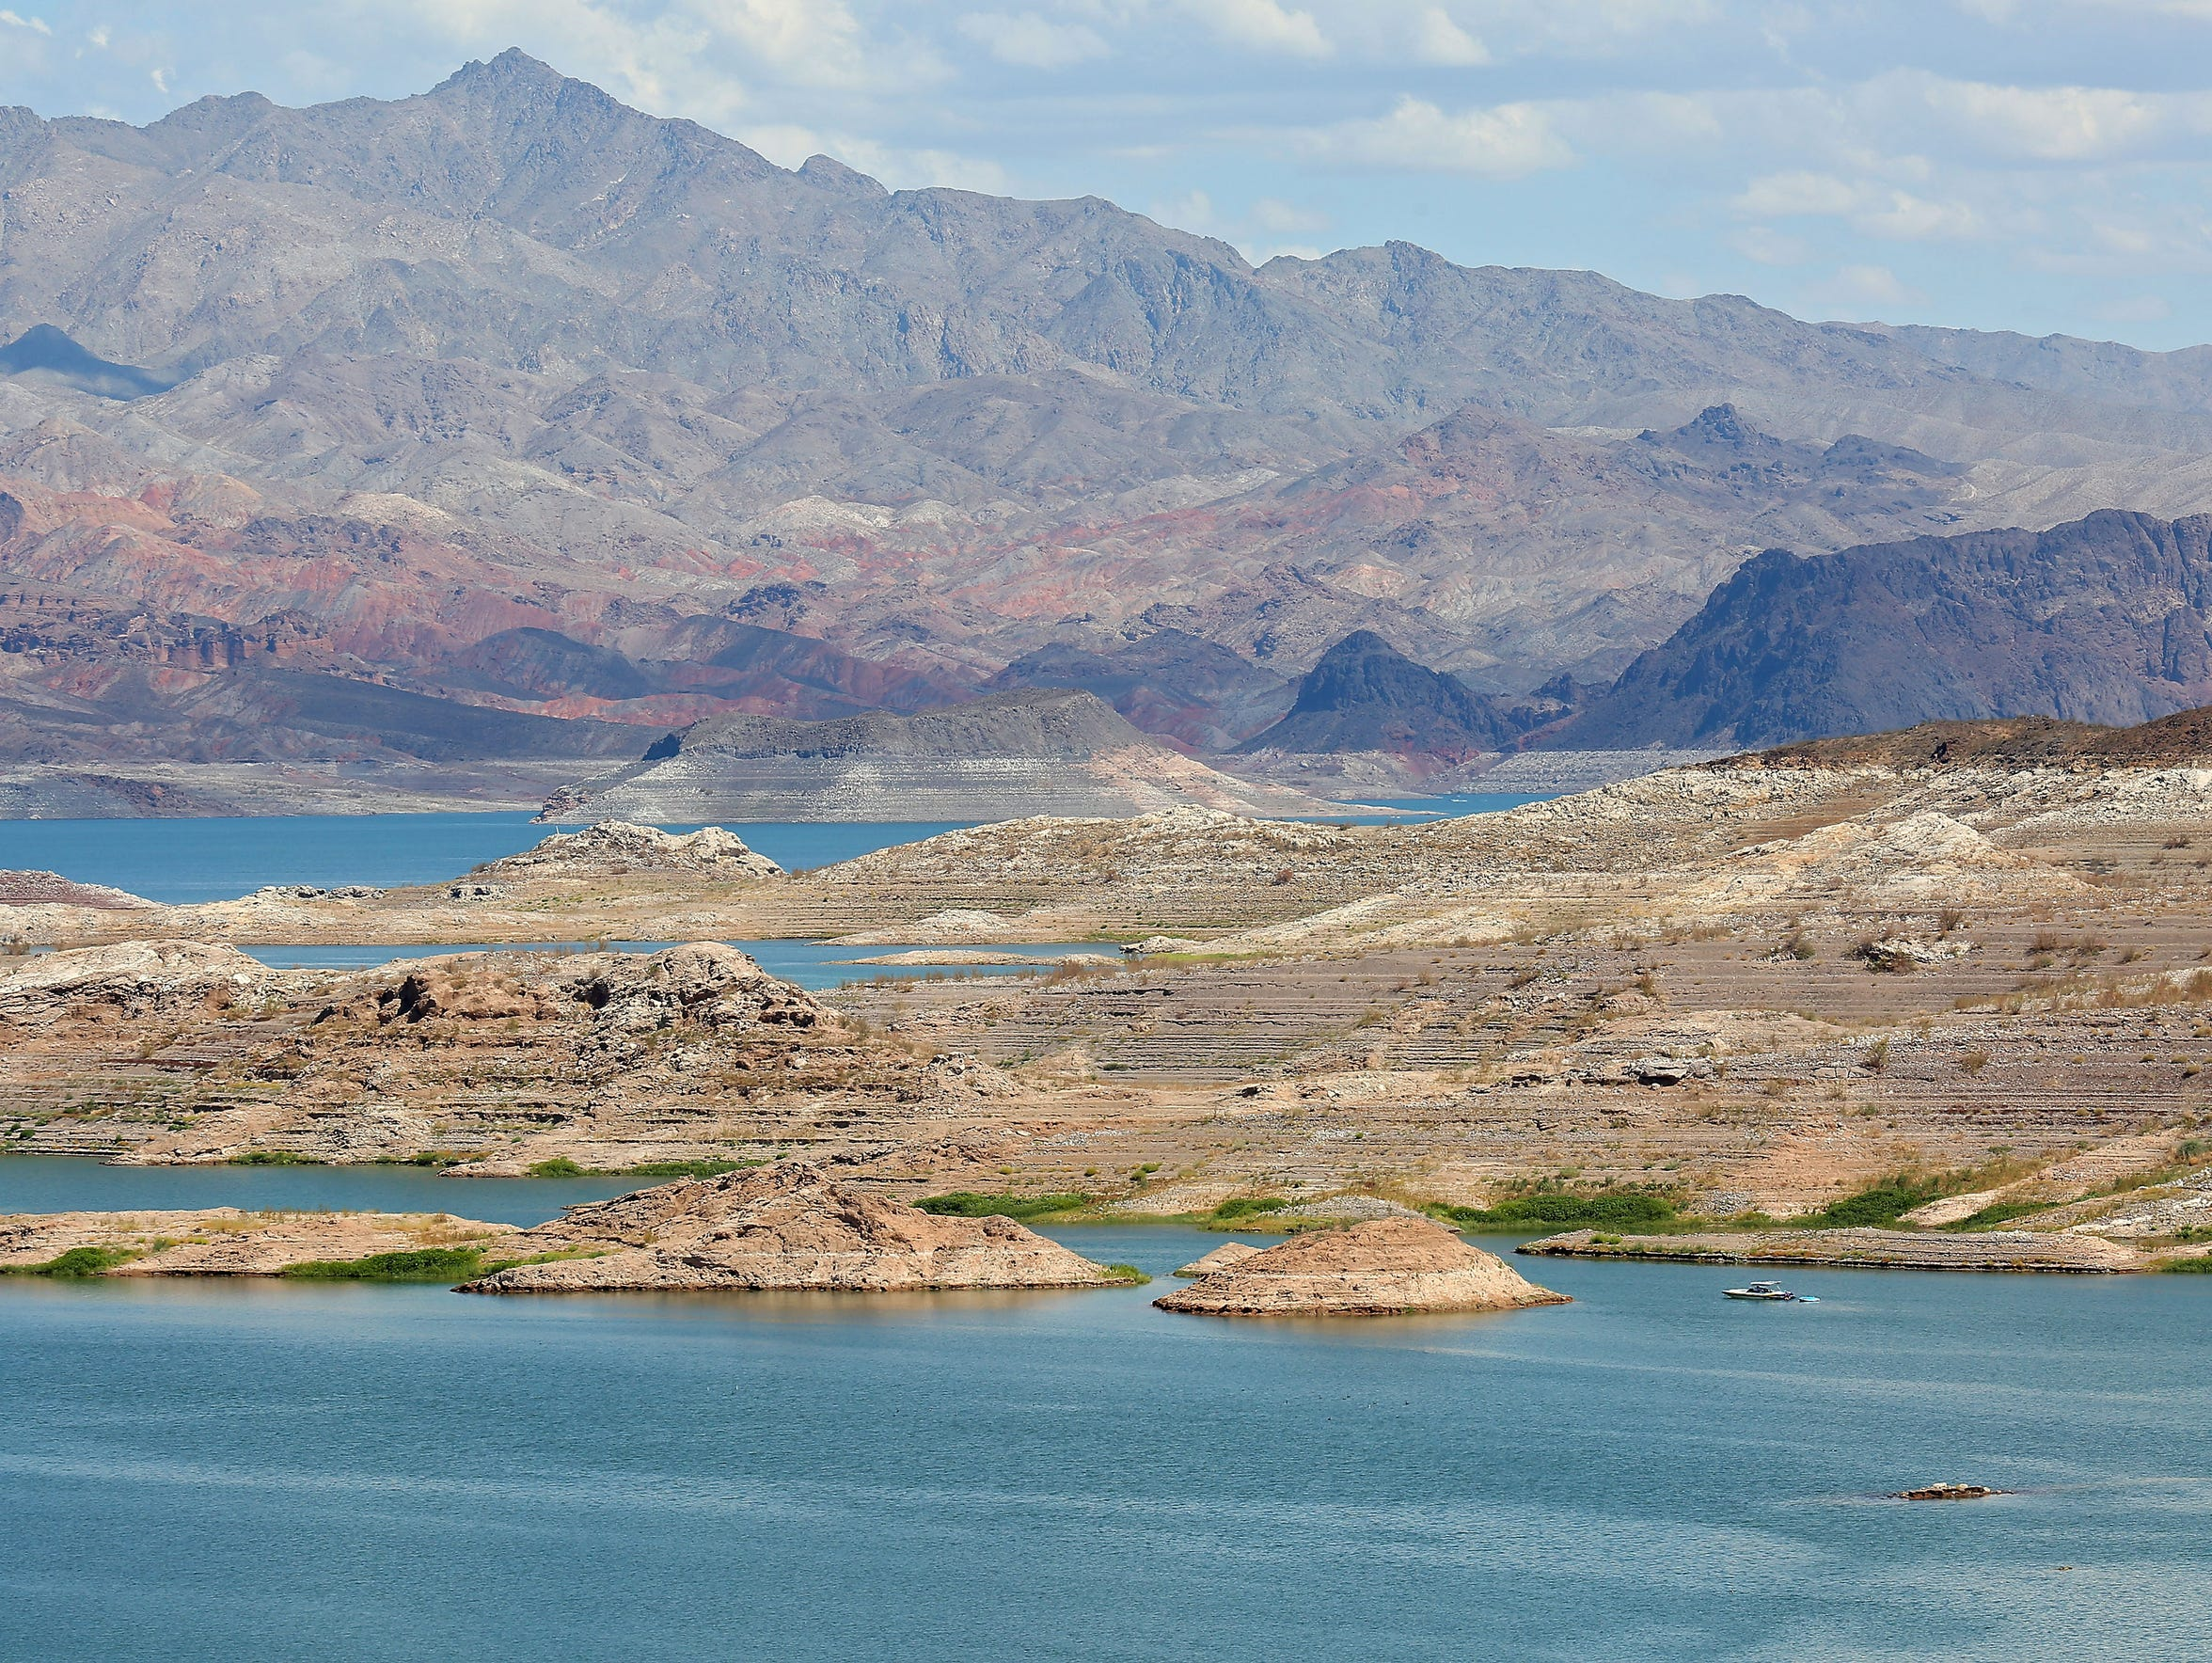 Lake Mead is the country's largest reservoir. California,